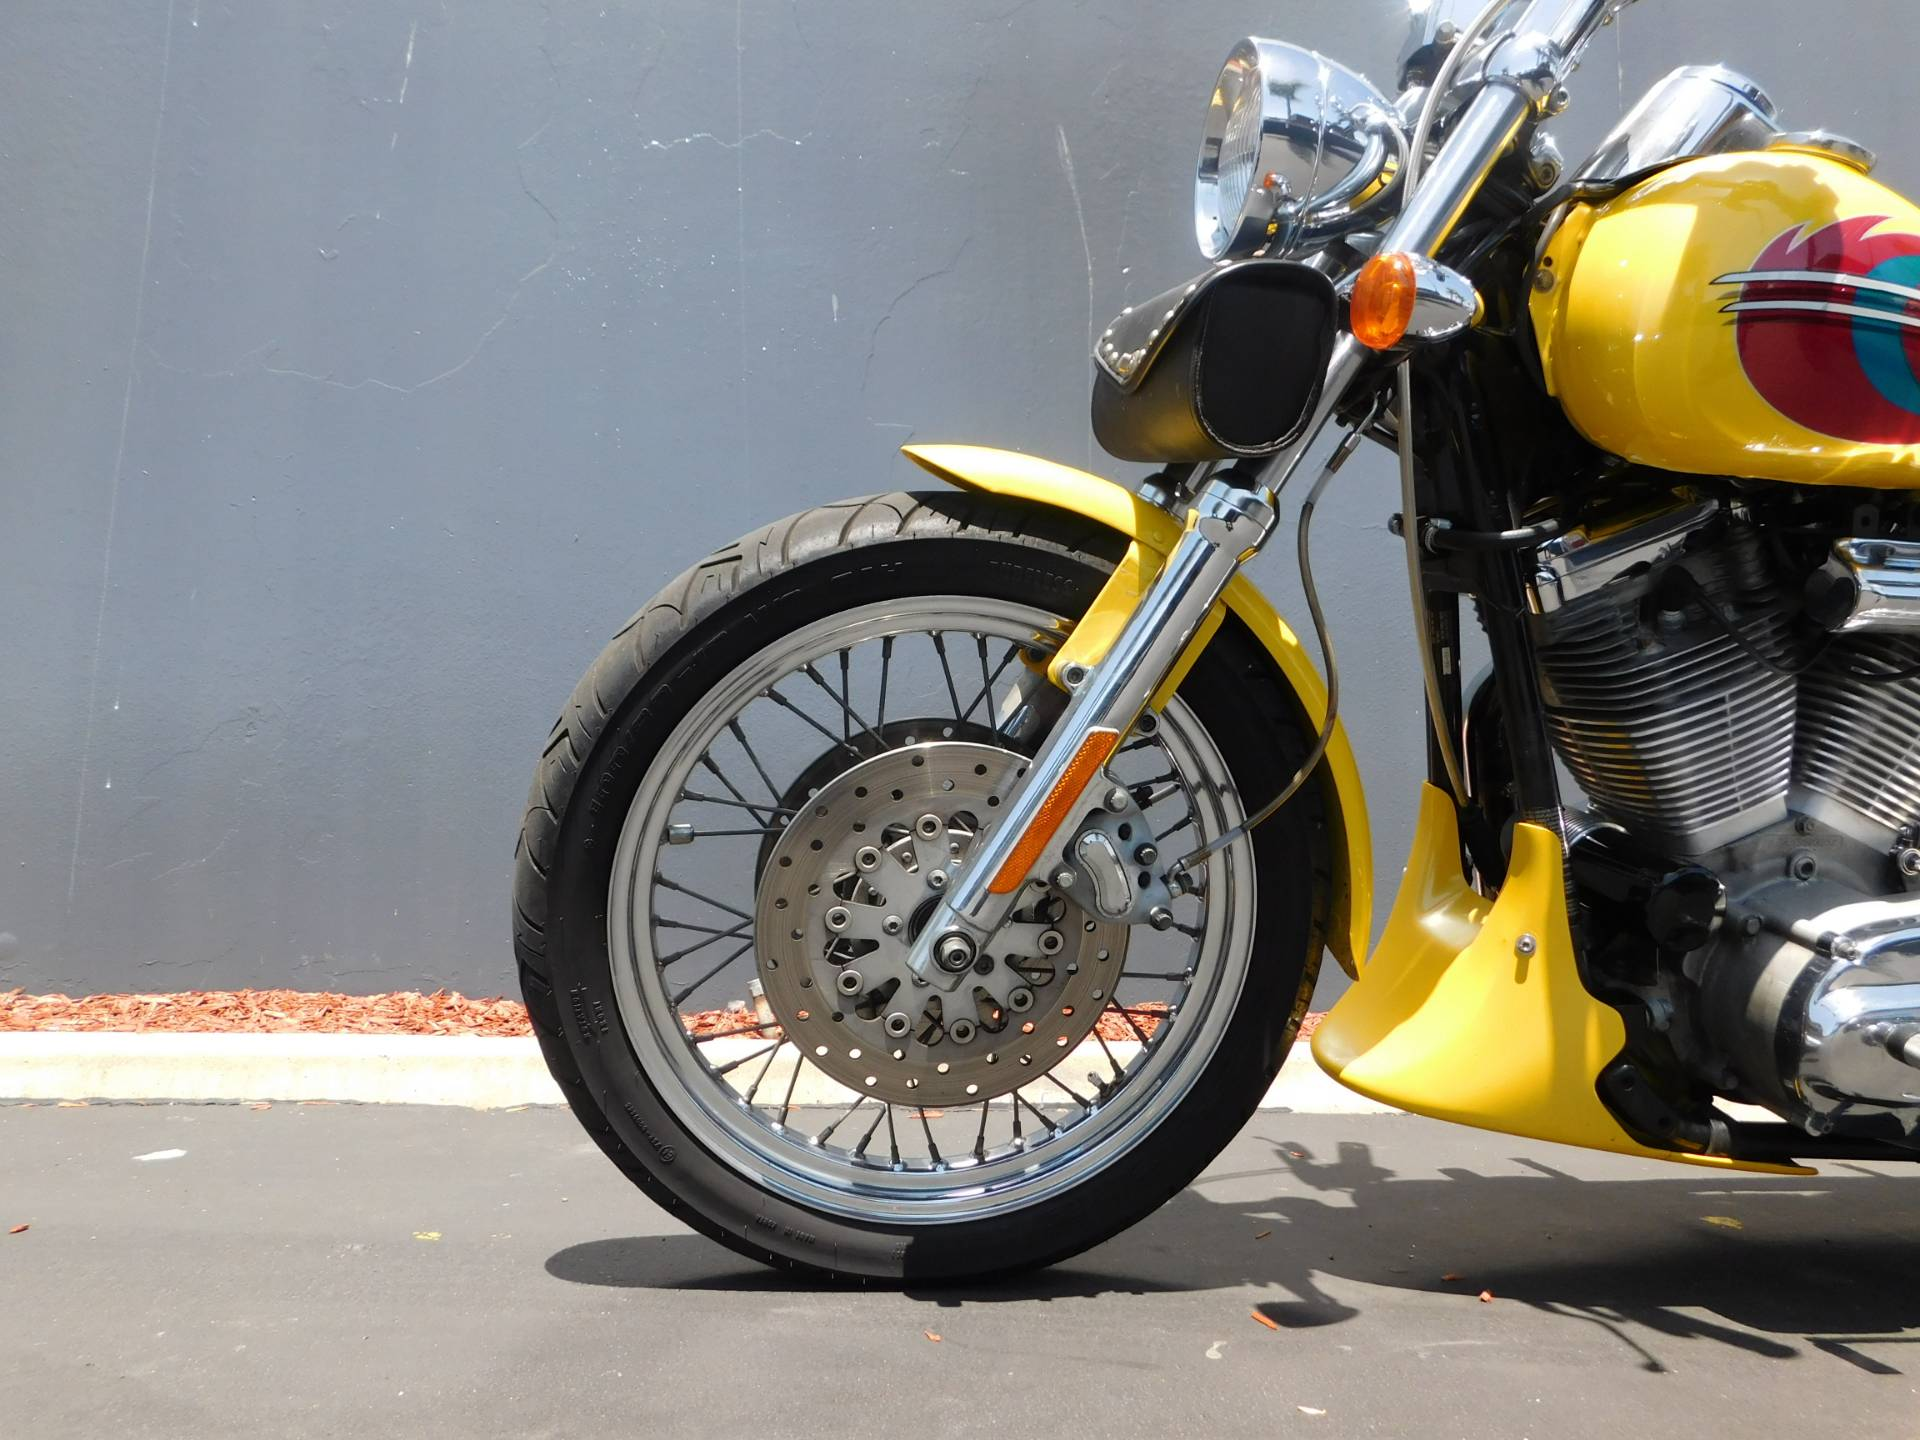 2000 Harley-Davidson FXR4 in Chula Vista, California